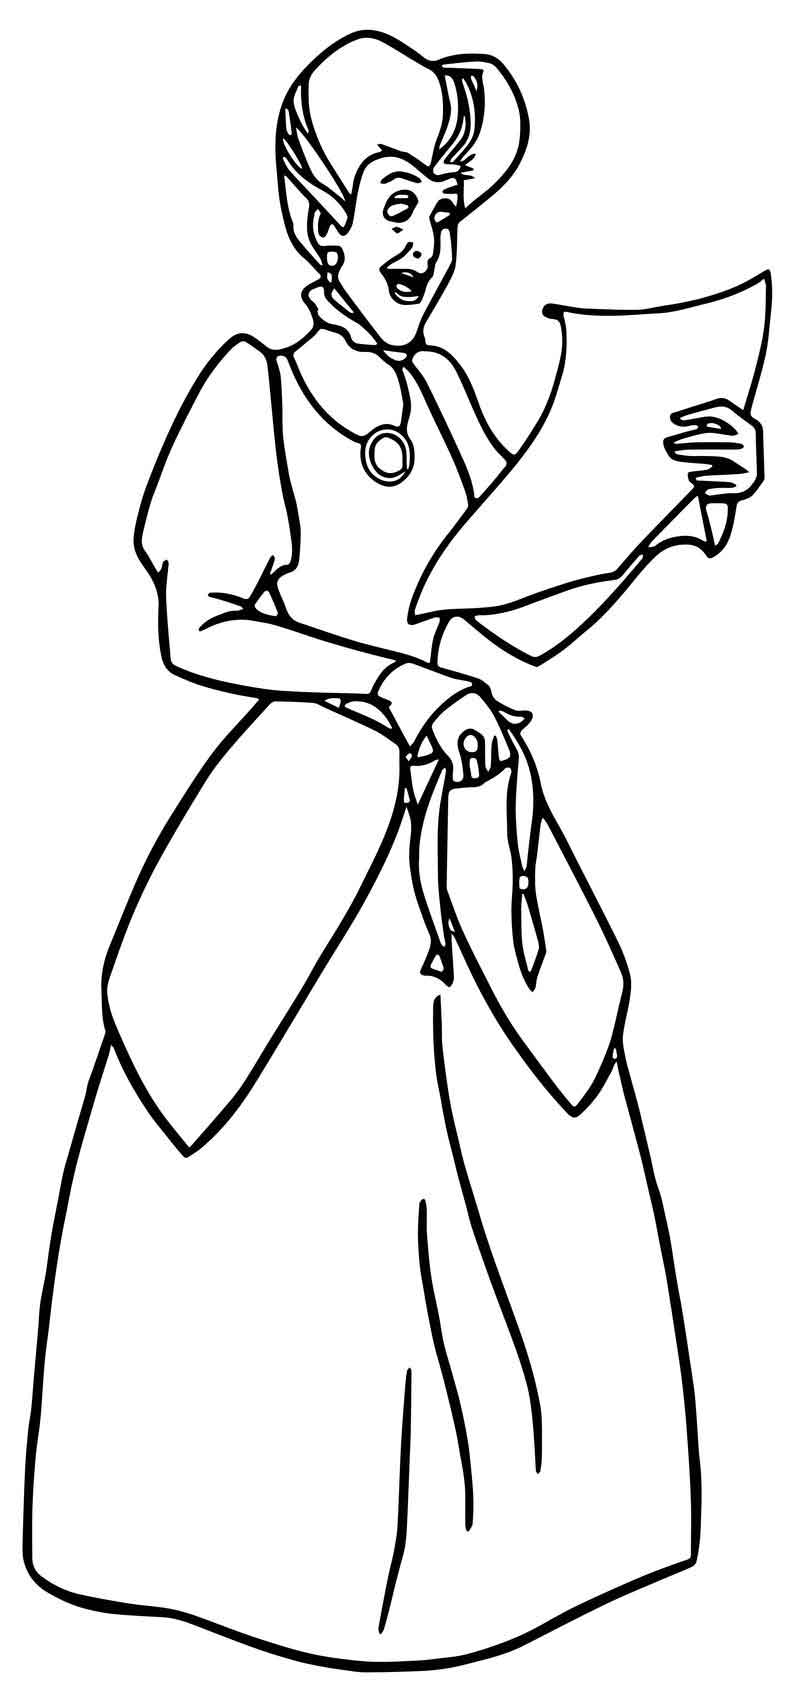 lucifer cinderella coloring page cinderella lady tremaine anastasia drizella and lucifer lucifer page cinderella coloring